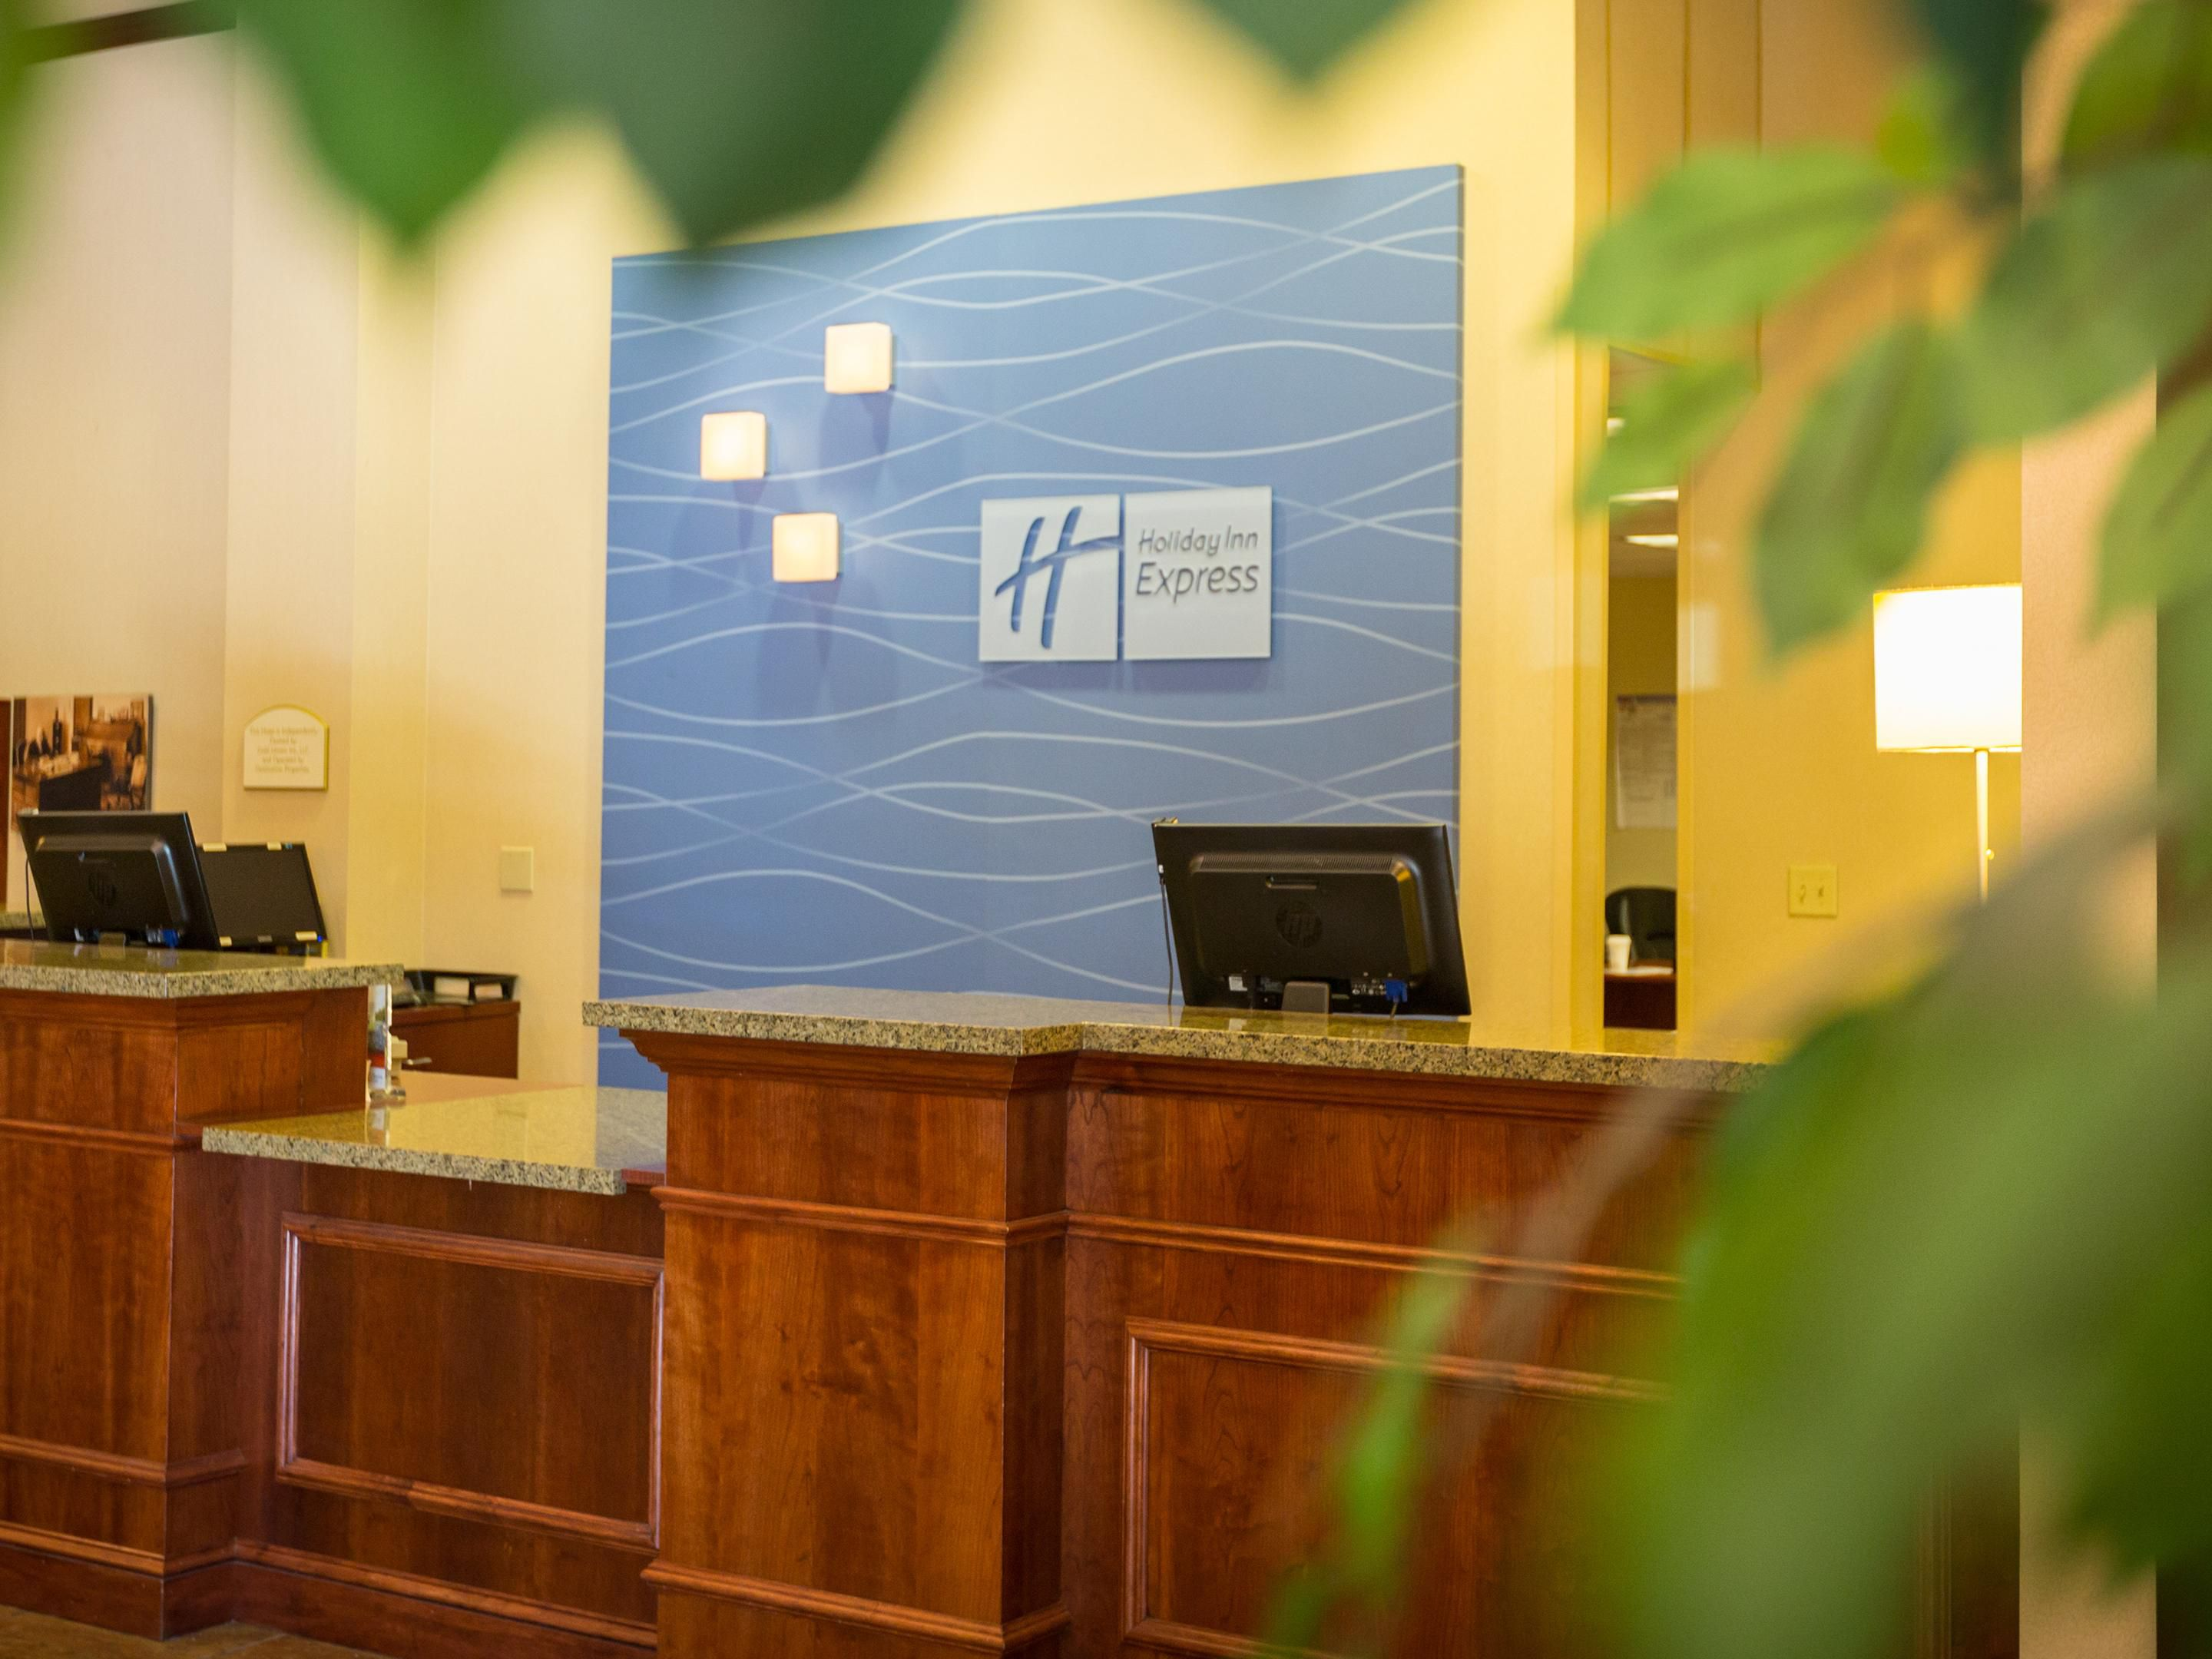 Welcome to the Holiday Inn Express in Grass Valley